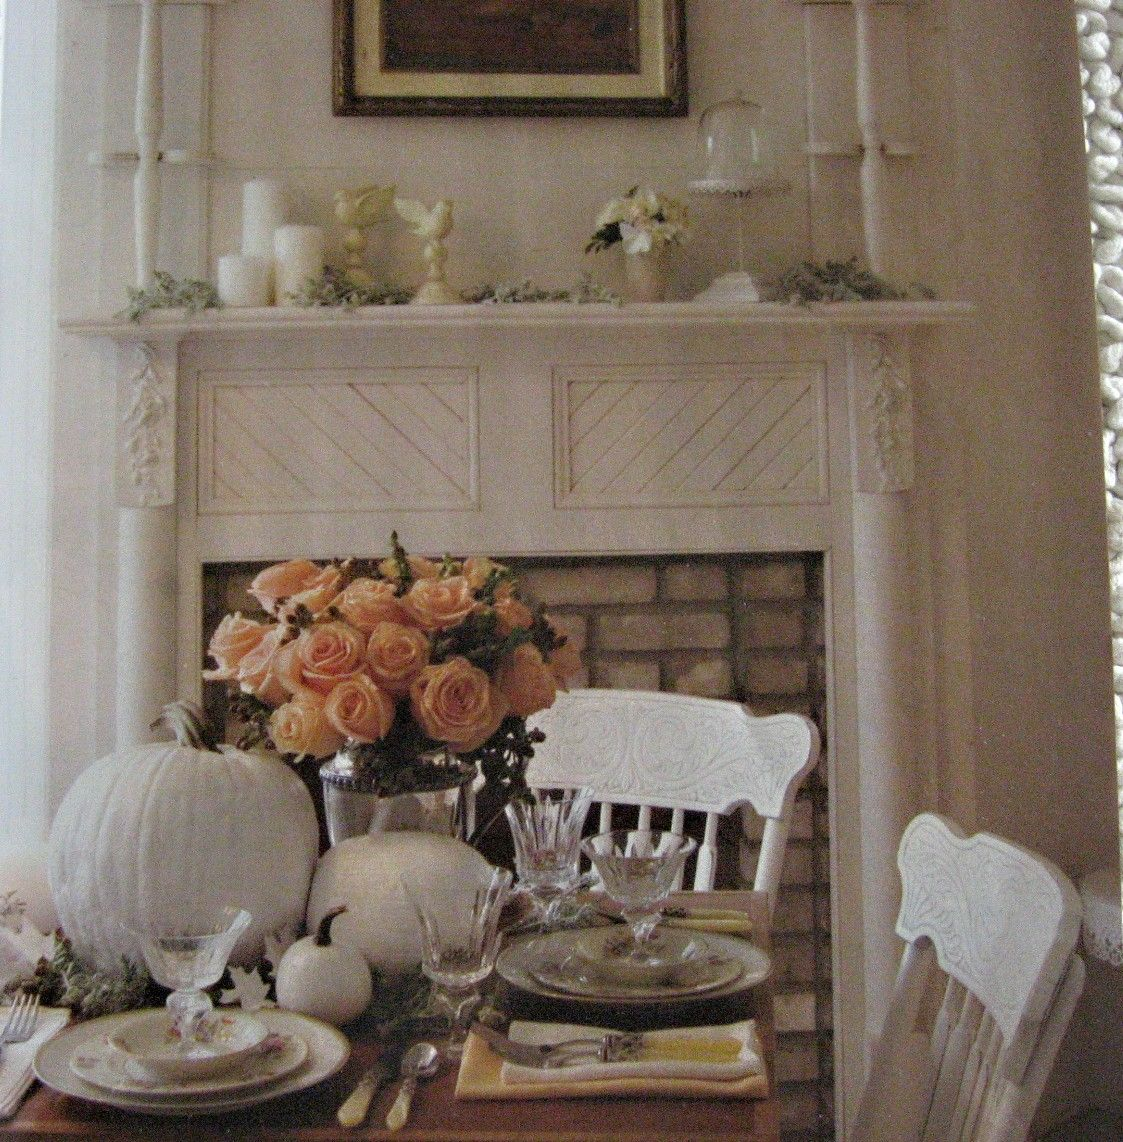 More Shabby Chic Halloween Interior Decor Ideas: Shabby Chic Fall Decorations